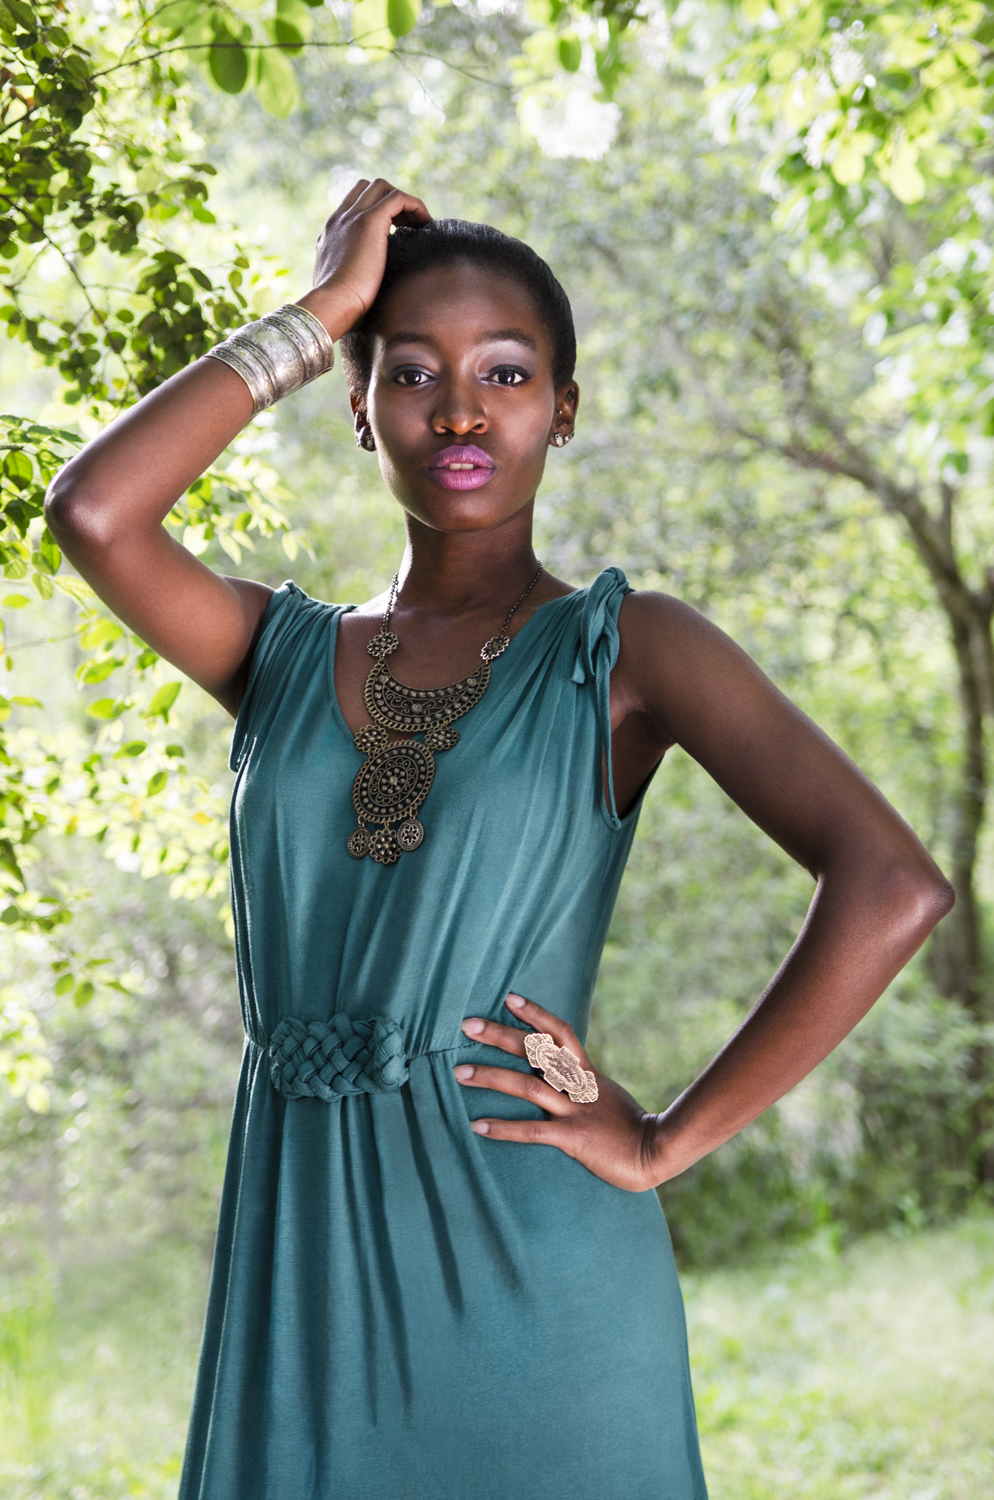 Model: Tenielle Adderley Hair and Makeup: Alex Filipowski Stylist: Trevenia Sandle Assistant: Megan Mullins  Location: Botanical Gardens - Savannah, GA